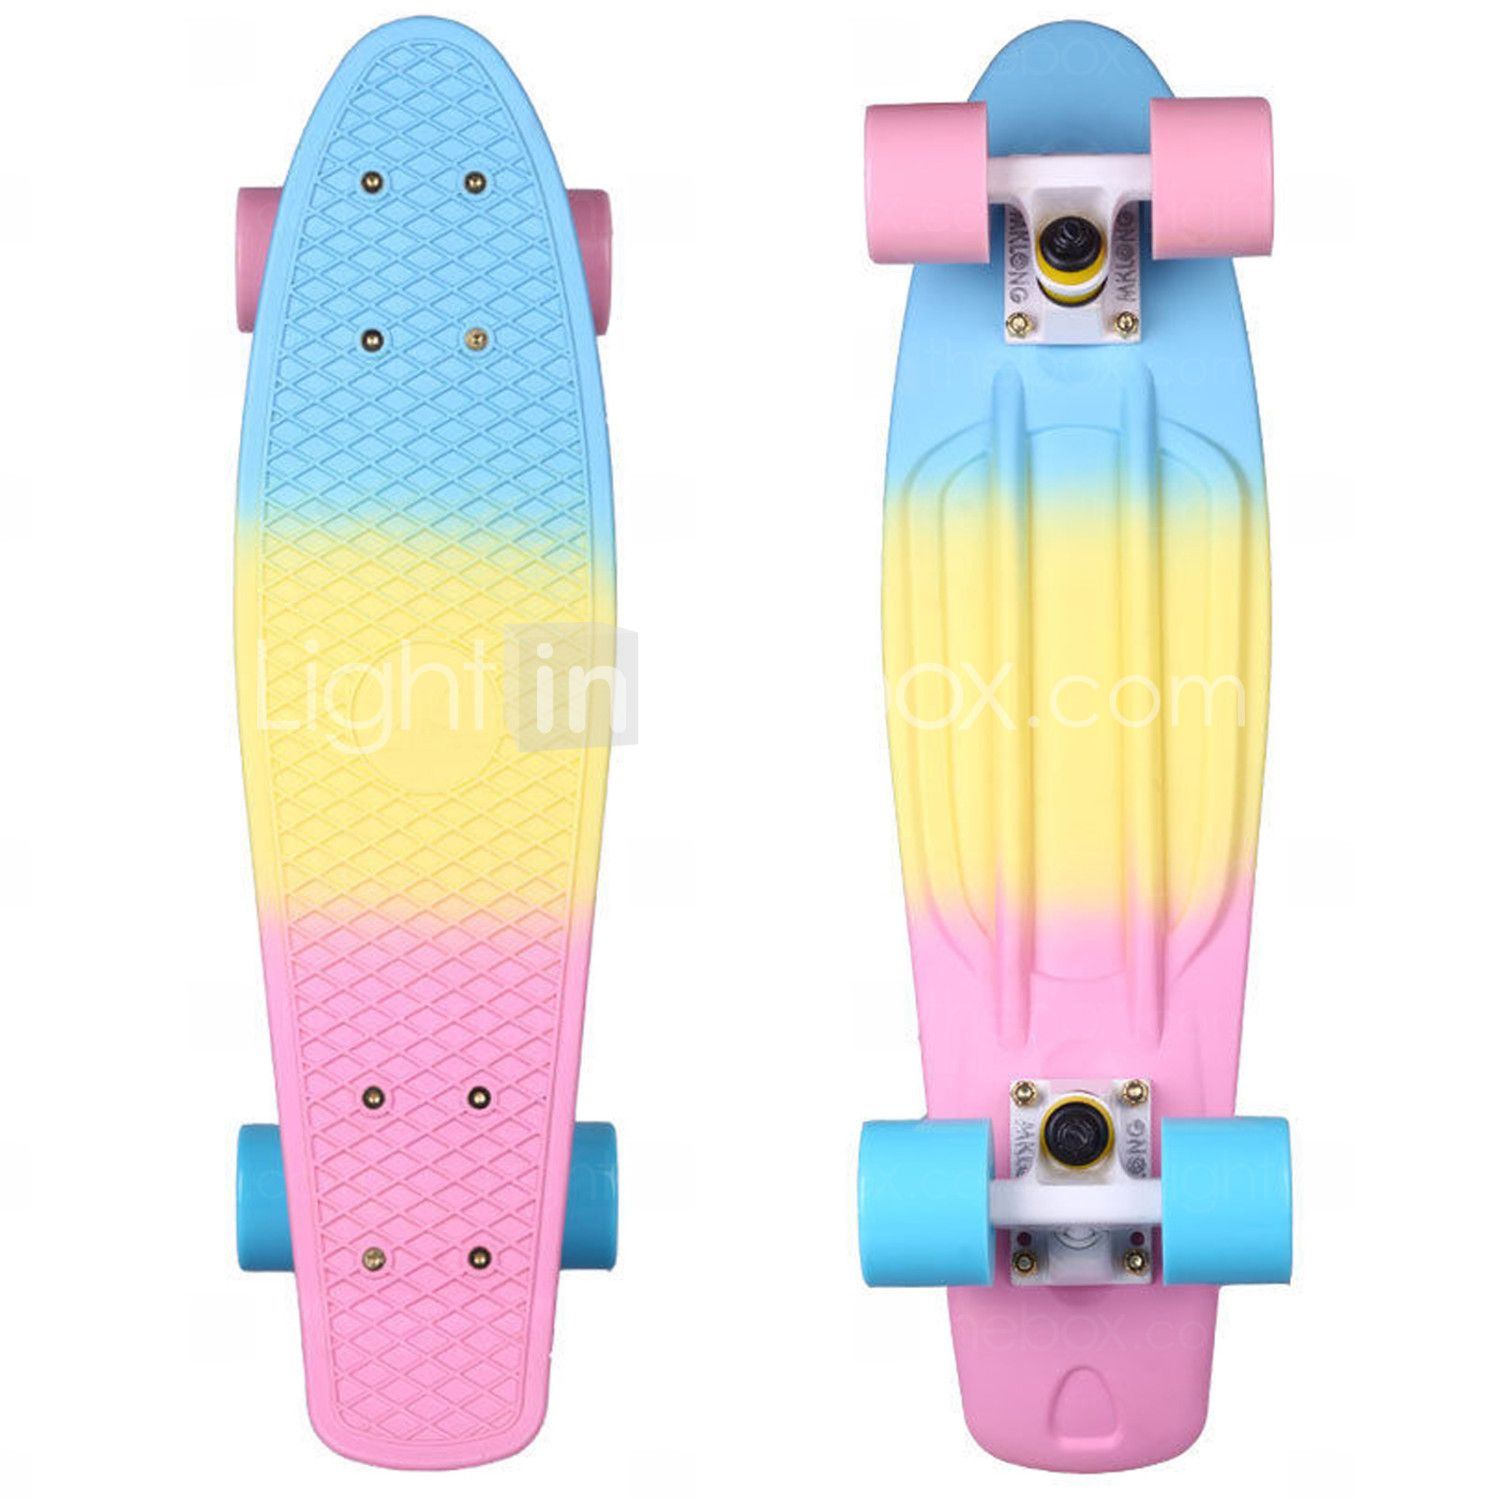 Aesthetic Penny Board Cheap